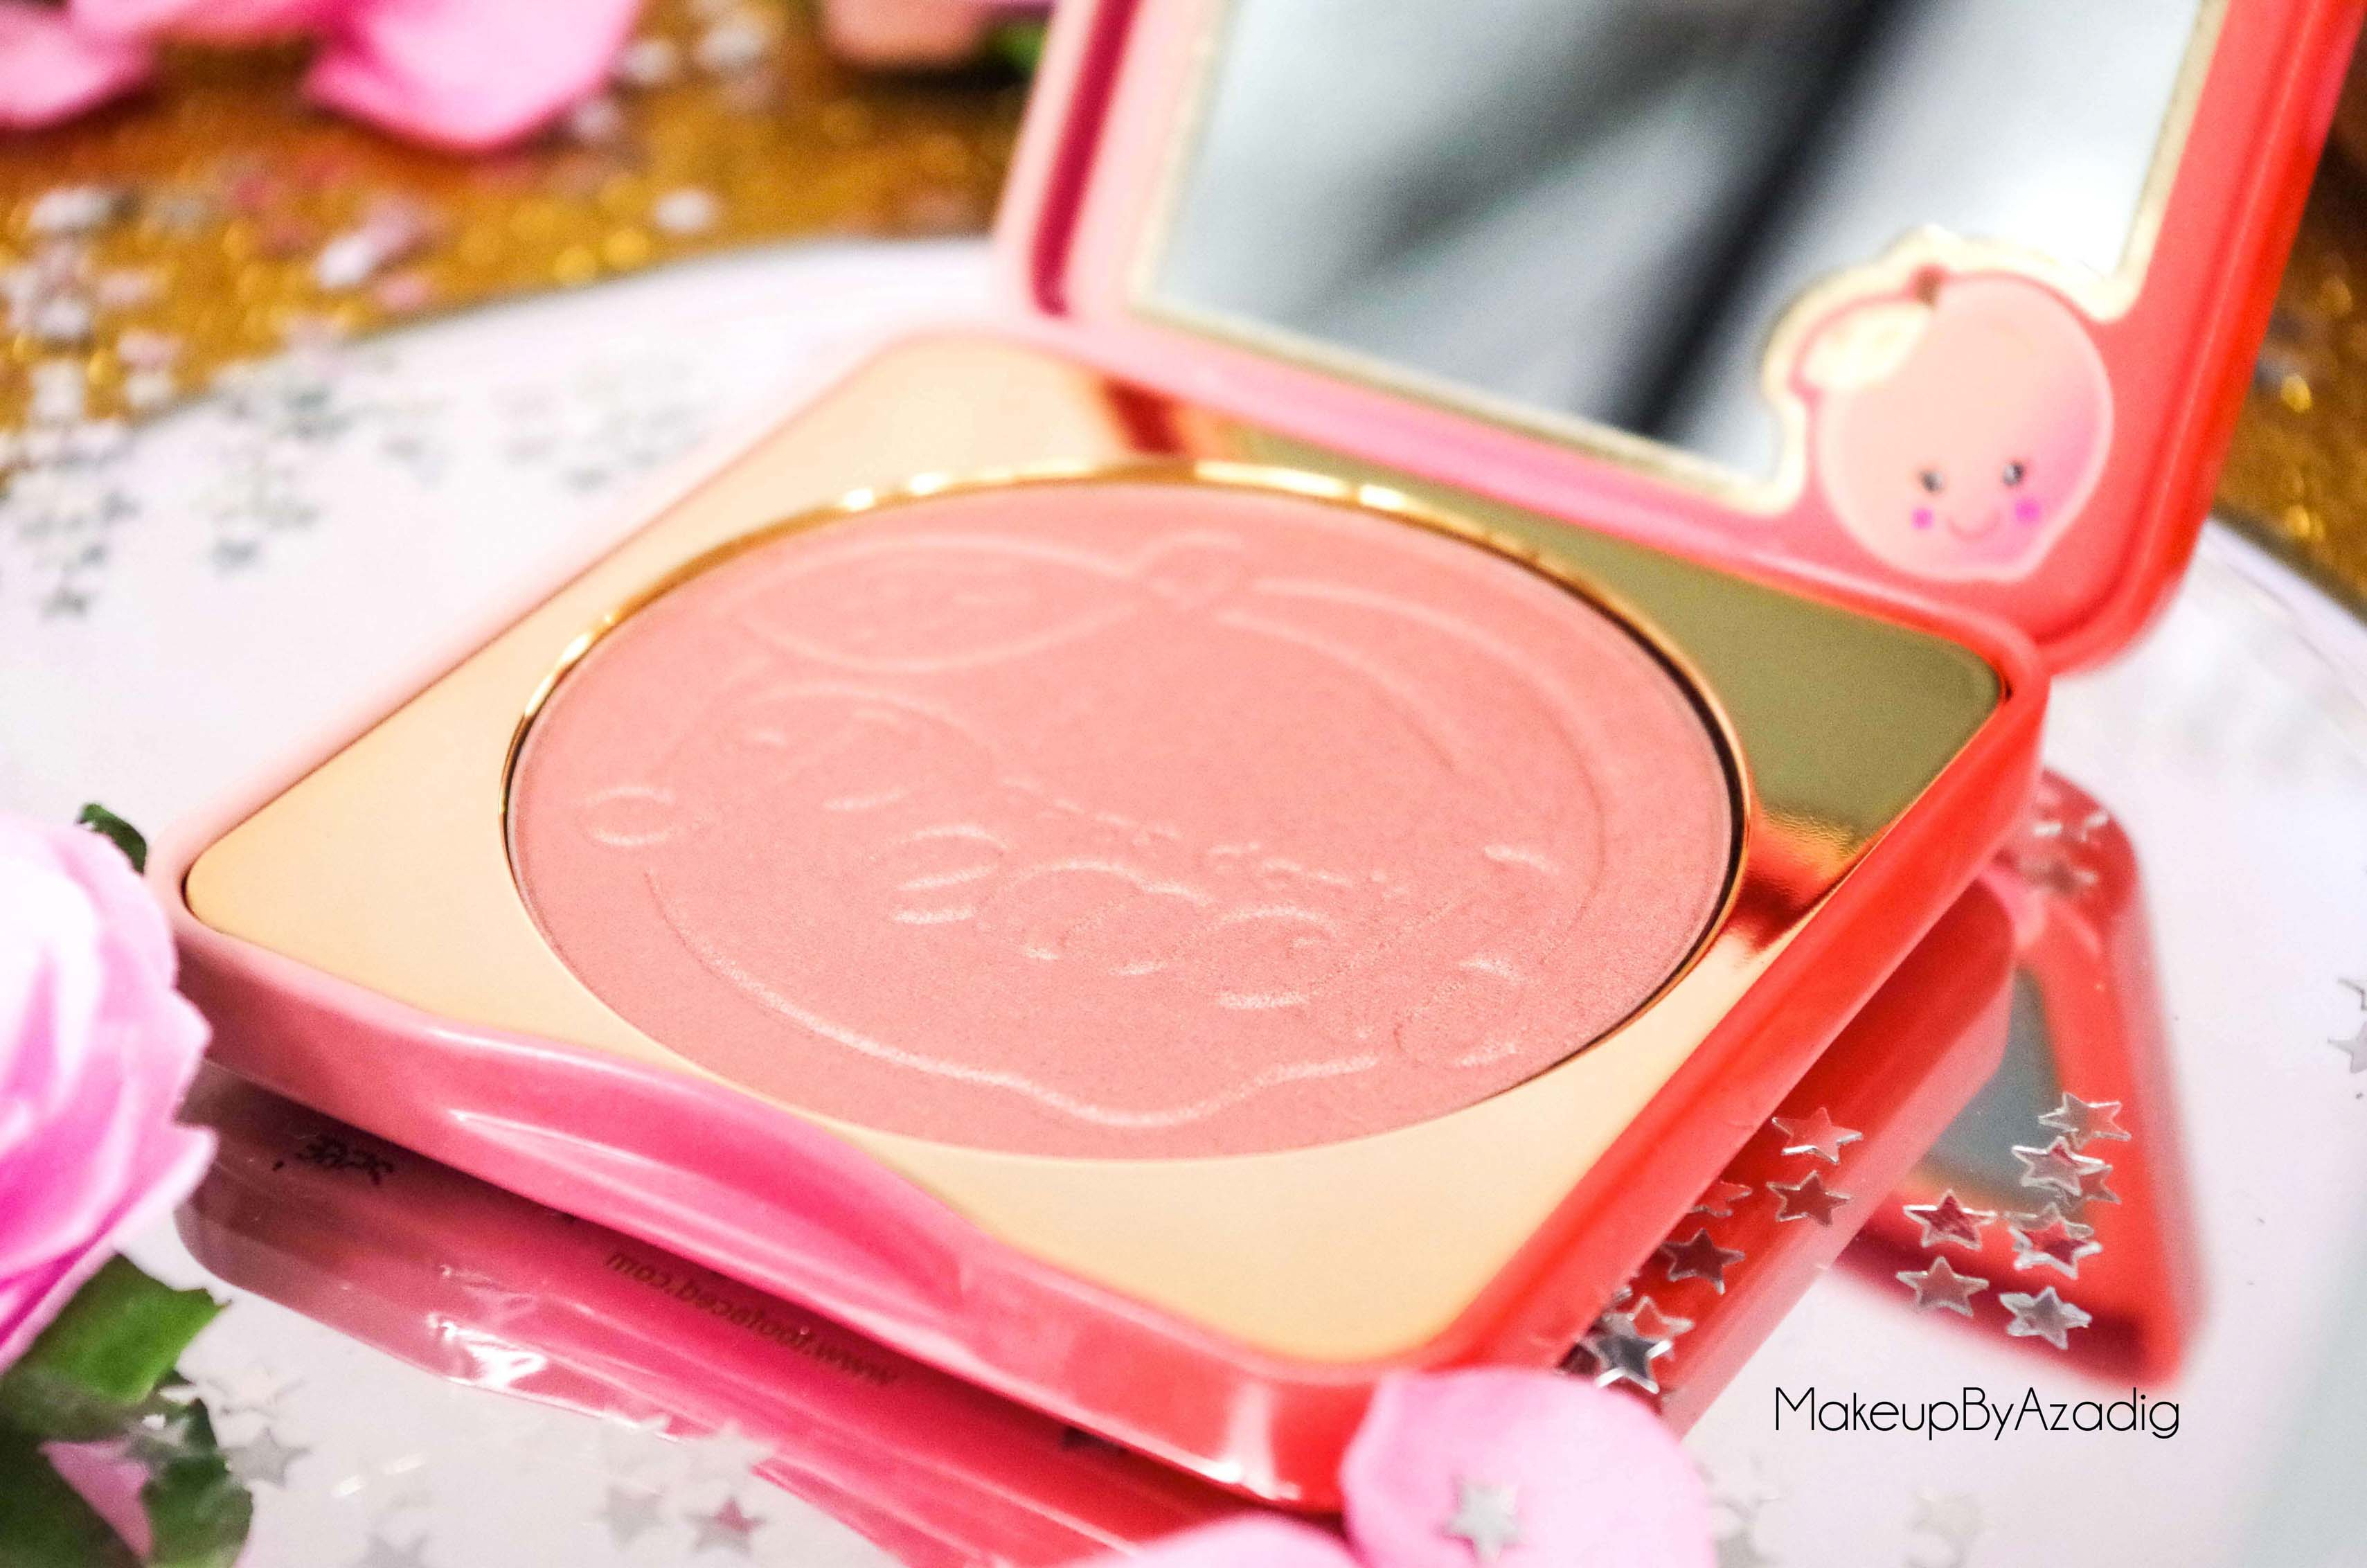 review-nouveau-blush-papa-dont-peach-too-faced-sephora-ete-printemps-paris-sweet-peach-swatch-avis-makeupbyazadig-teinte-2